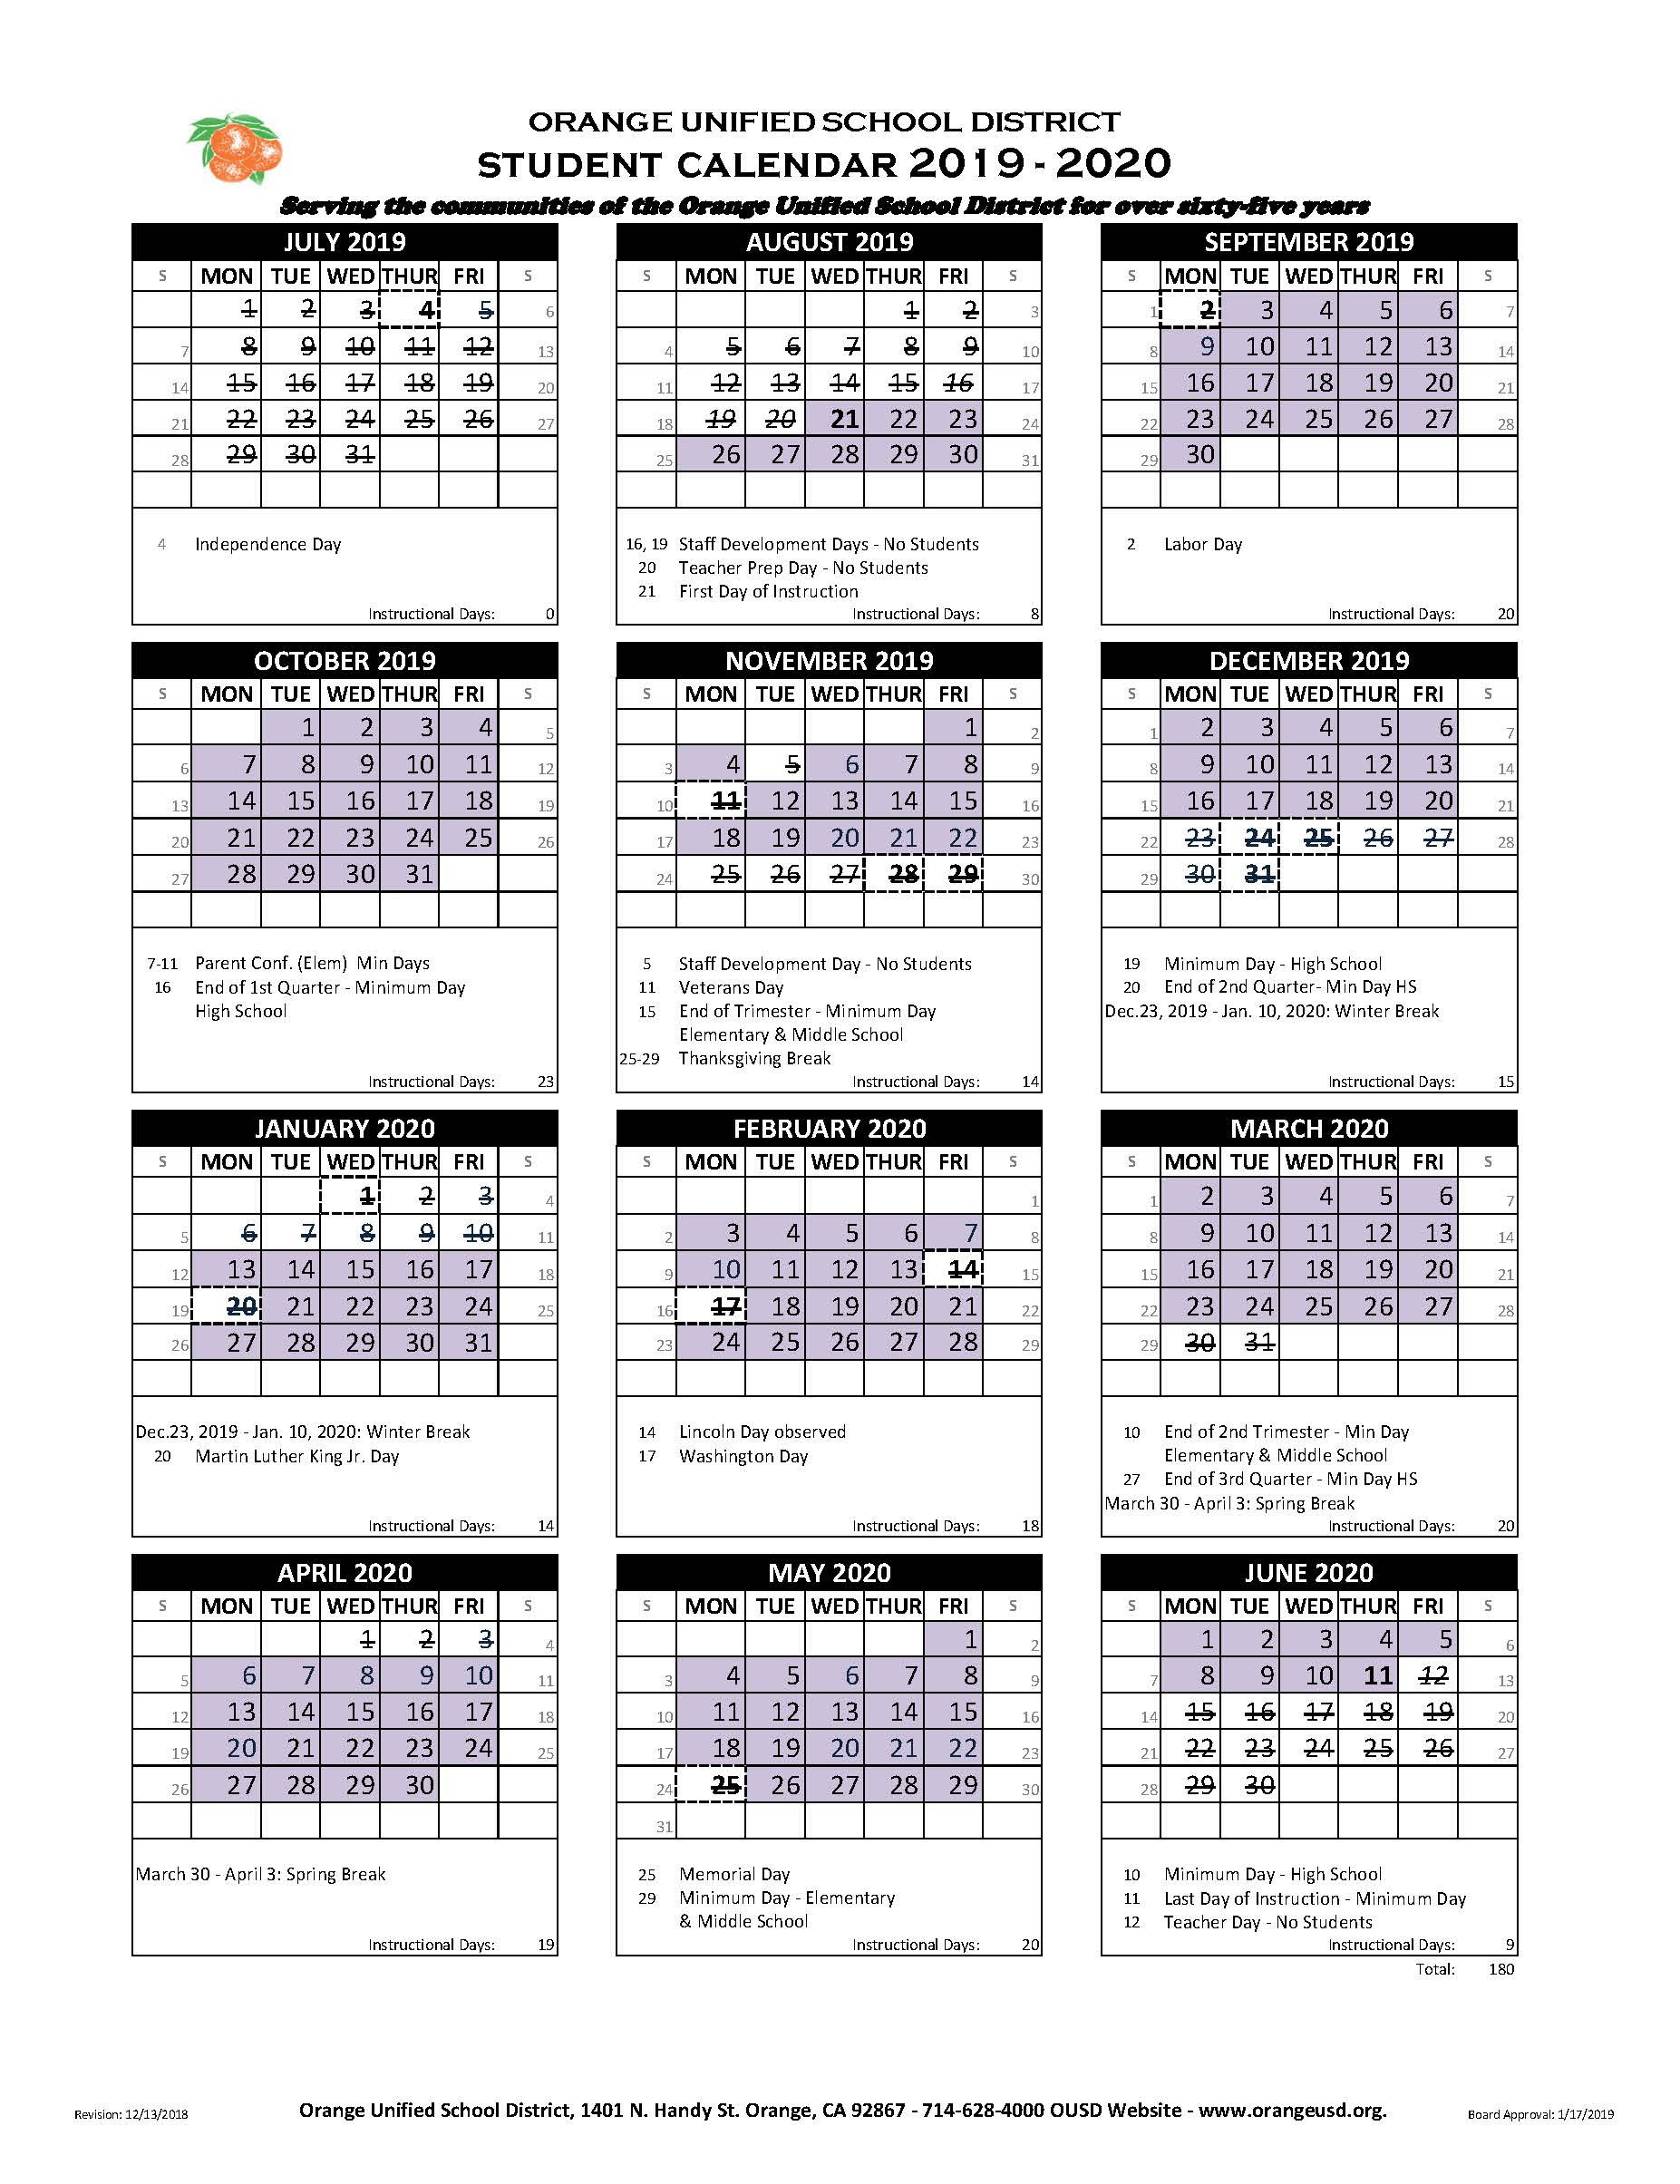 Student Calendar - Villa Park High School for Lincoln Unified School District Calendar 2021